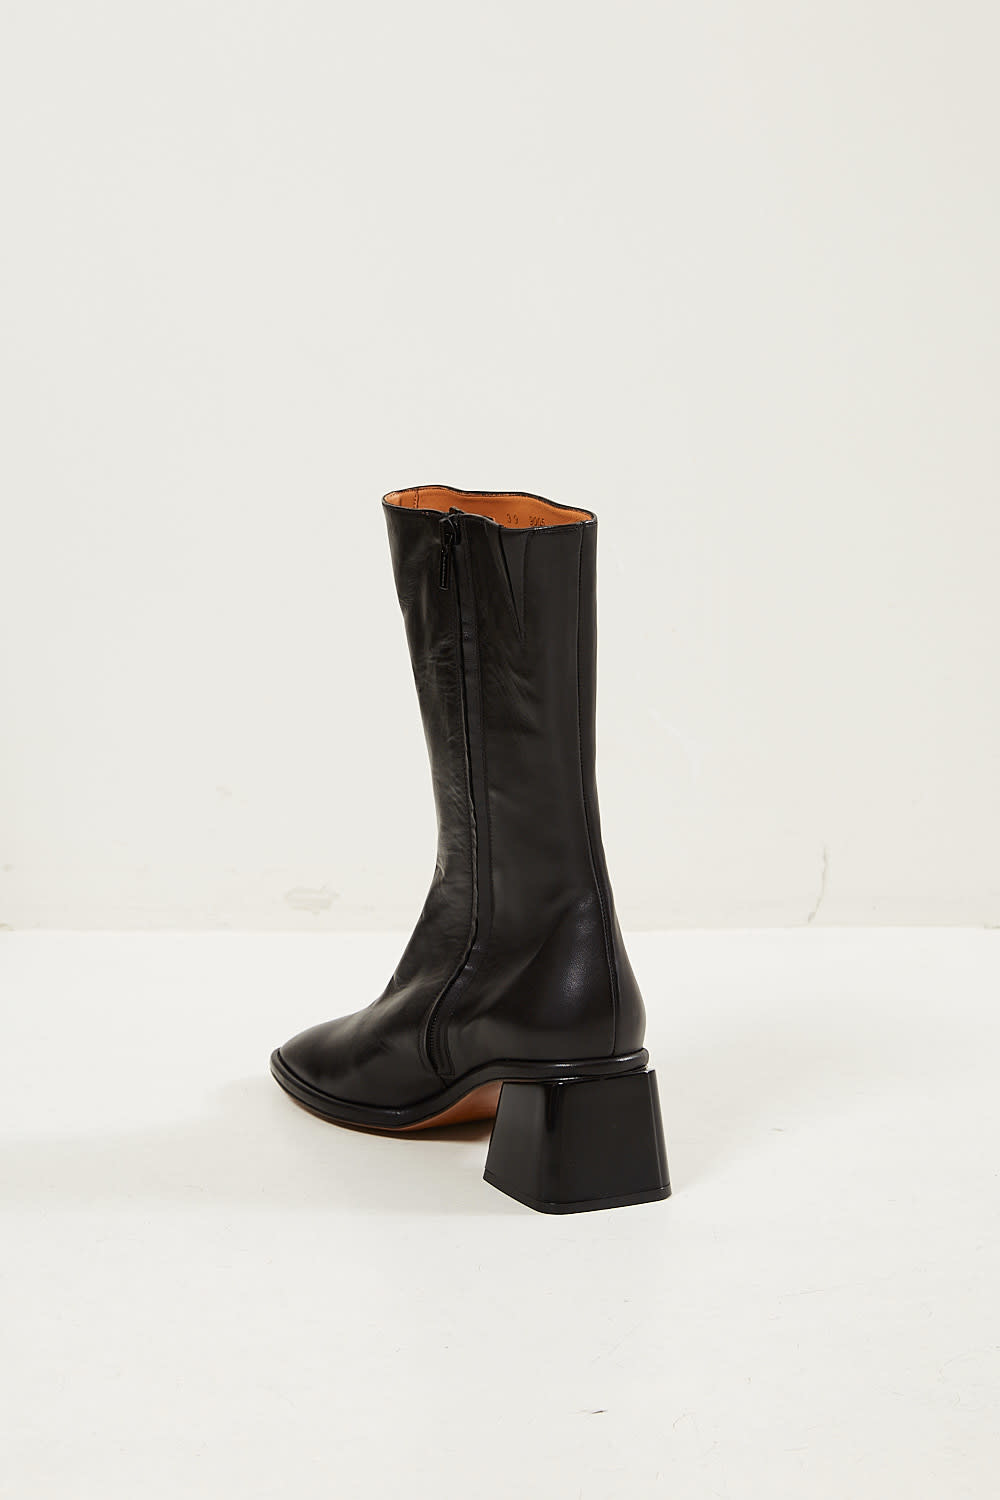 Clergerie - Tara lambs leather boots